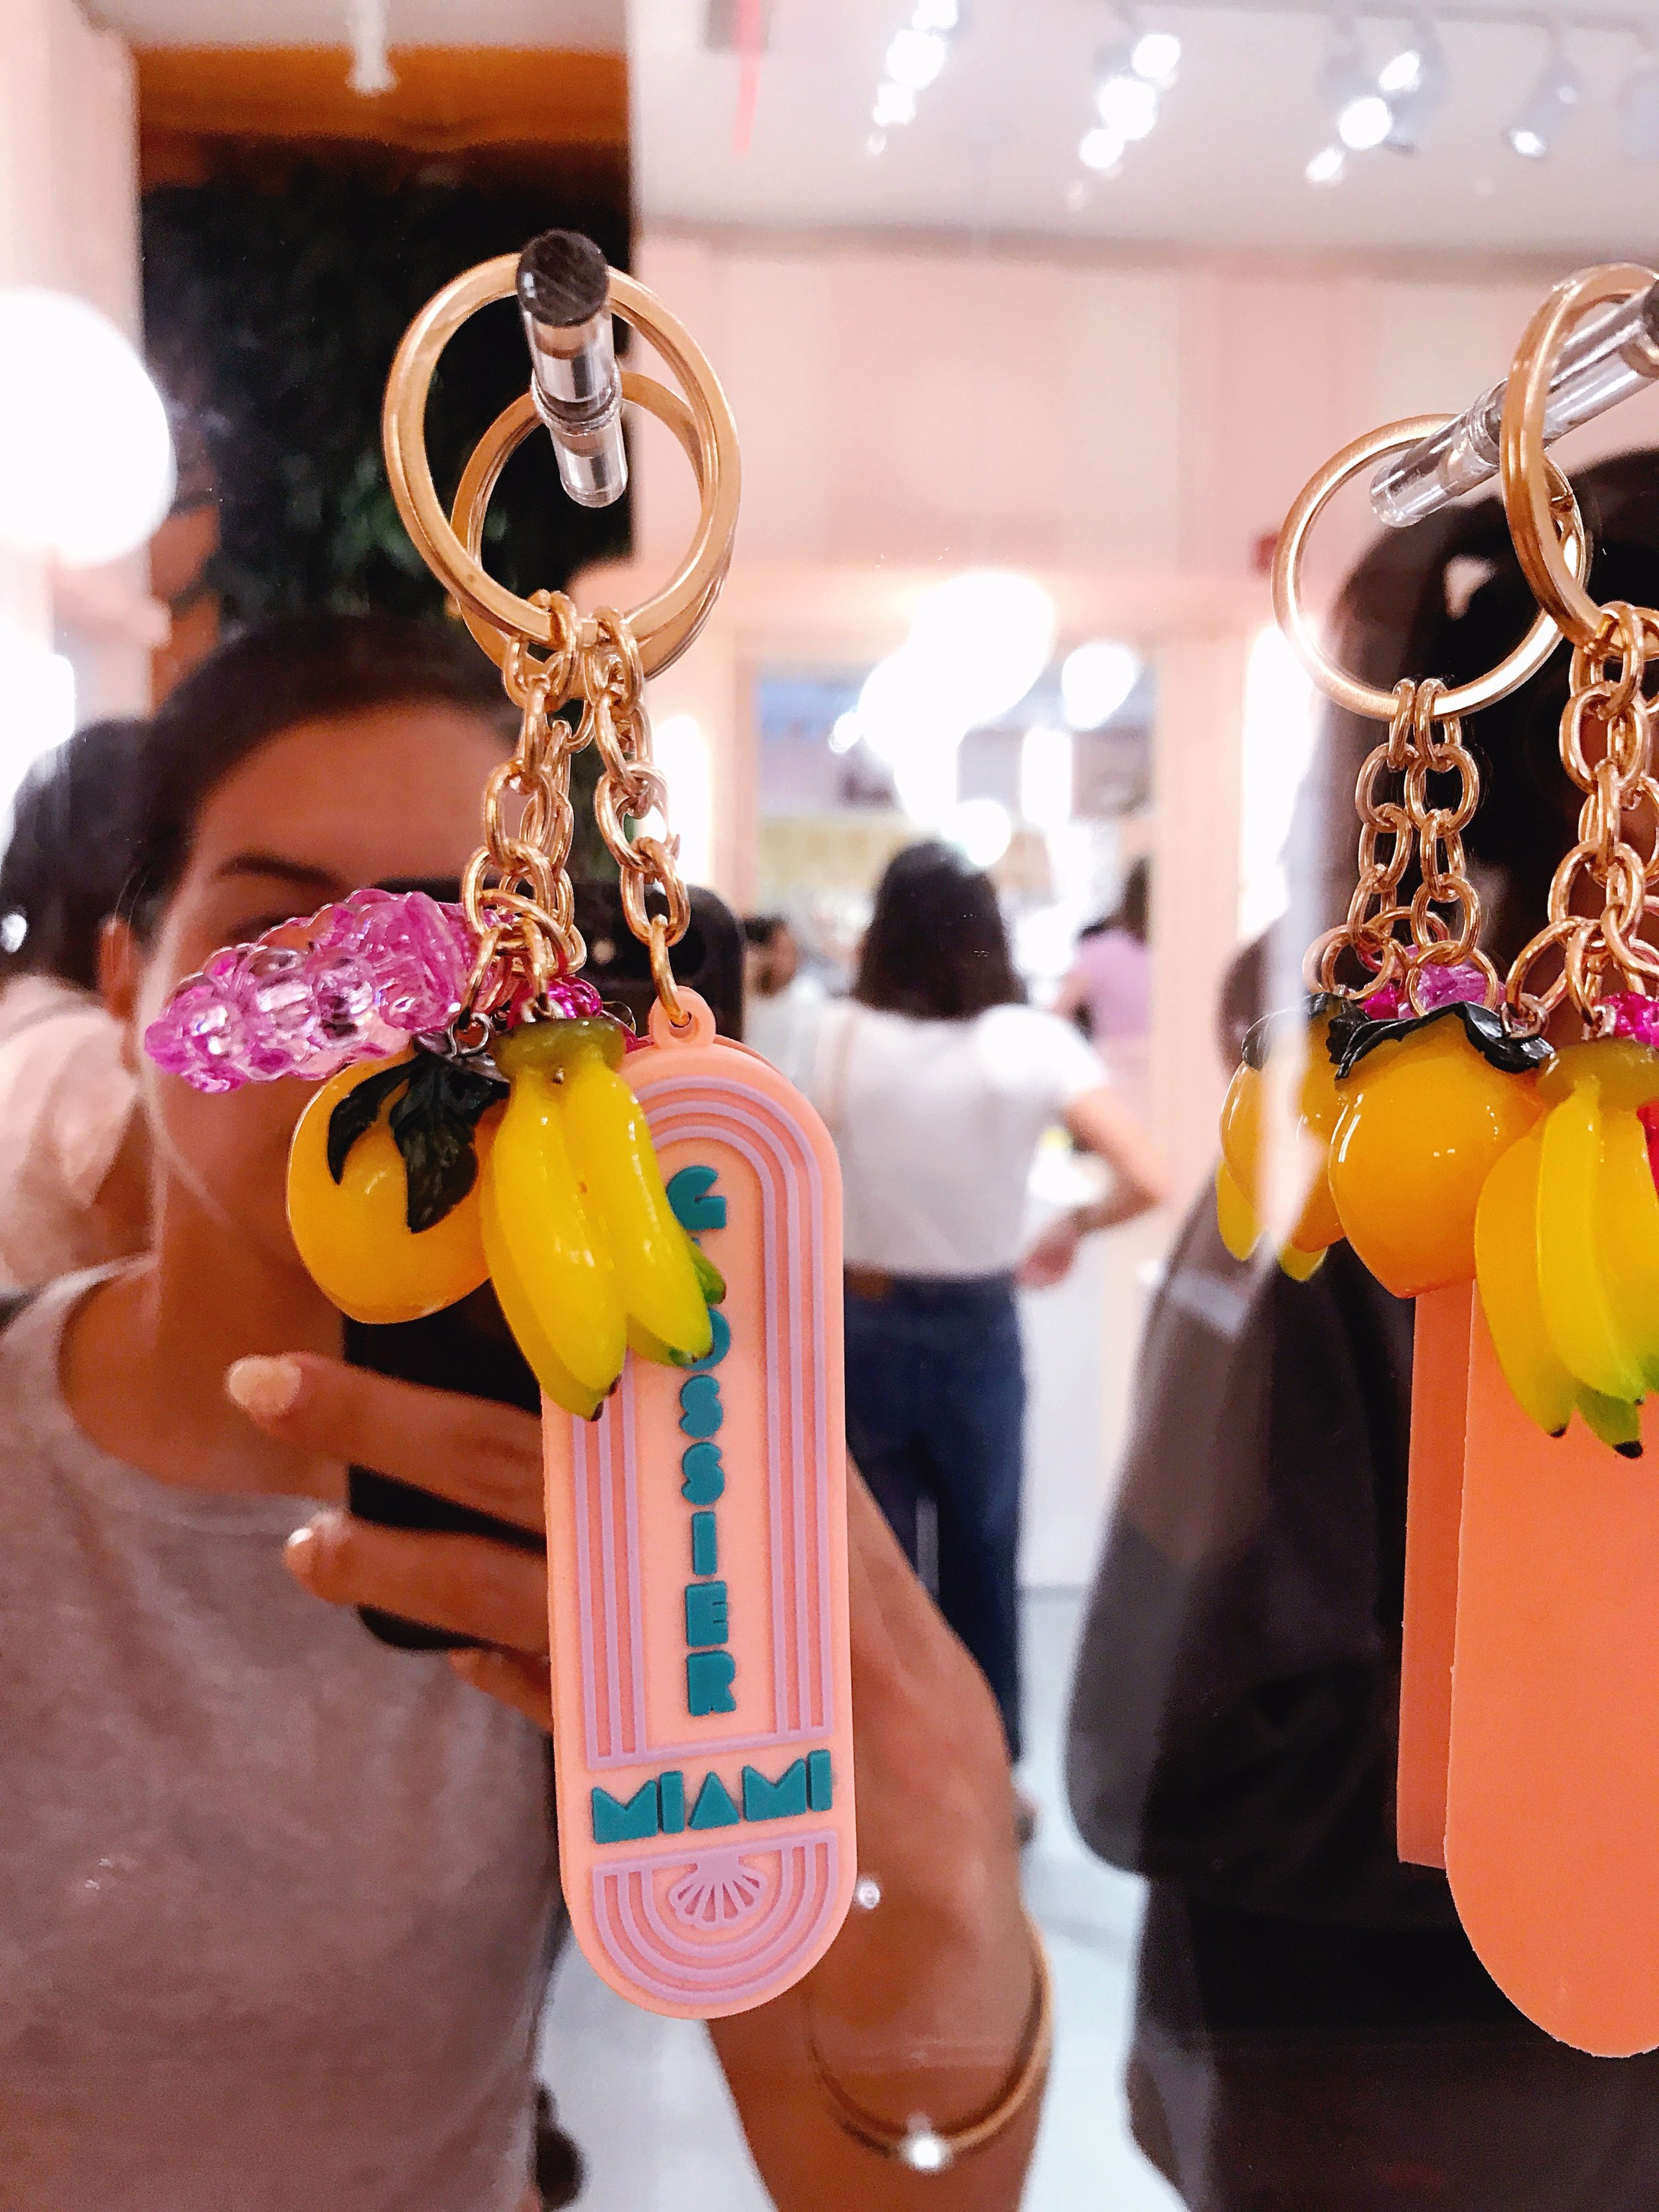 Glossier Selfie! Naty knew what was up and grabbed an exclusive keychain for her Nat friend here :). (Photo Credit: Natalia Yepes)